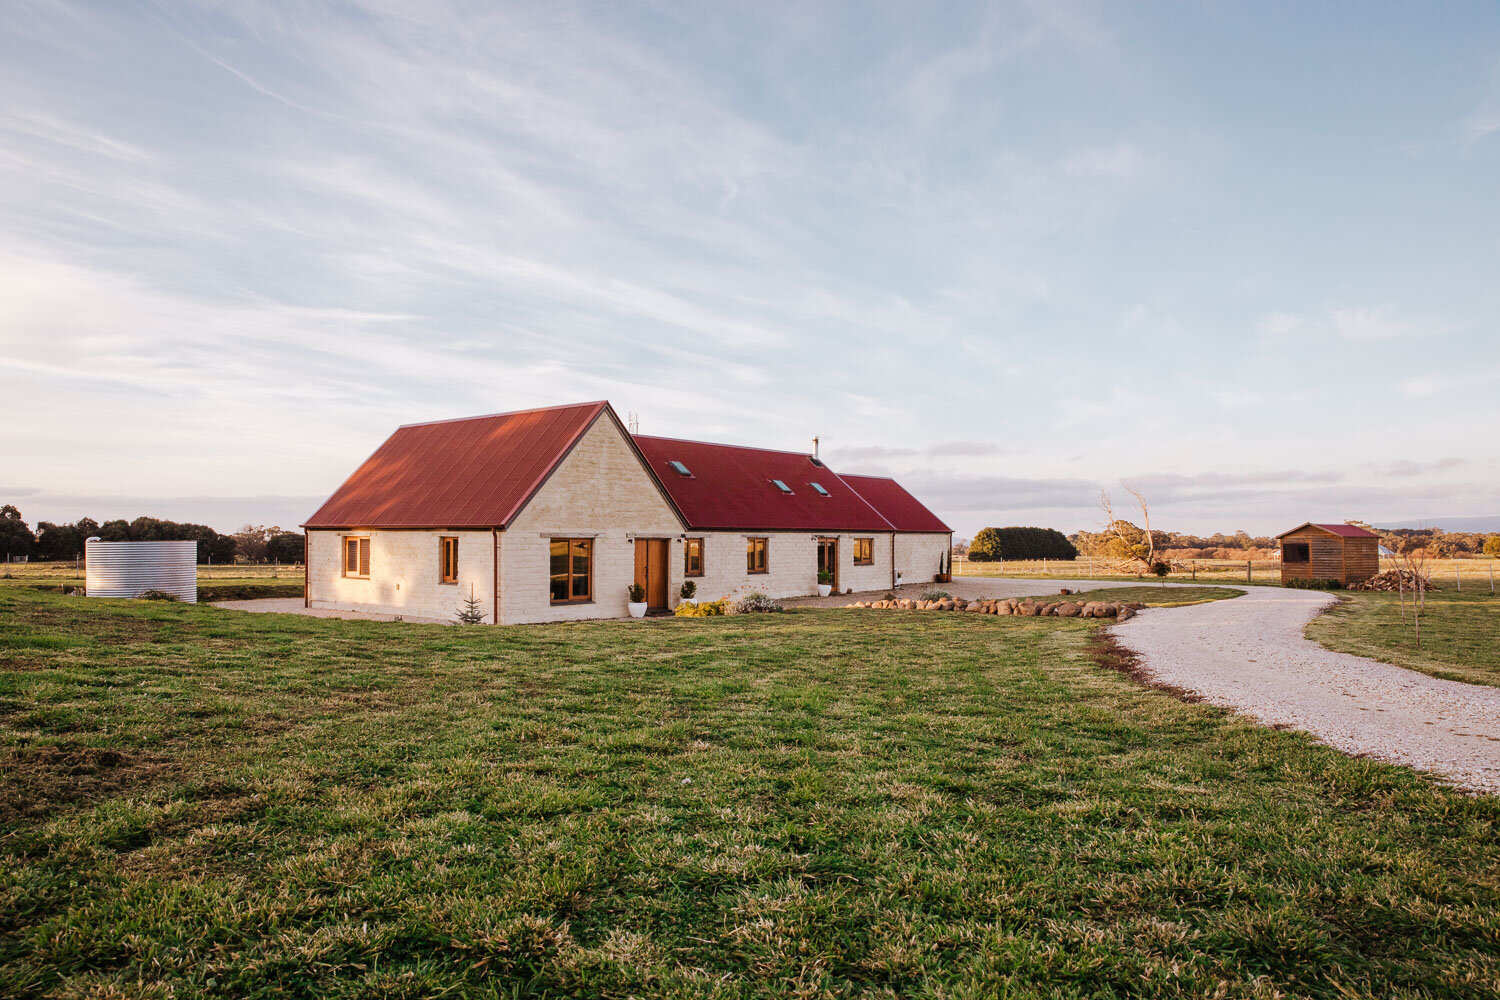 House-of-mud-and-straw-trentham-east-home-exterior-and-farmland